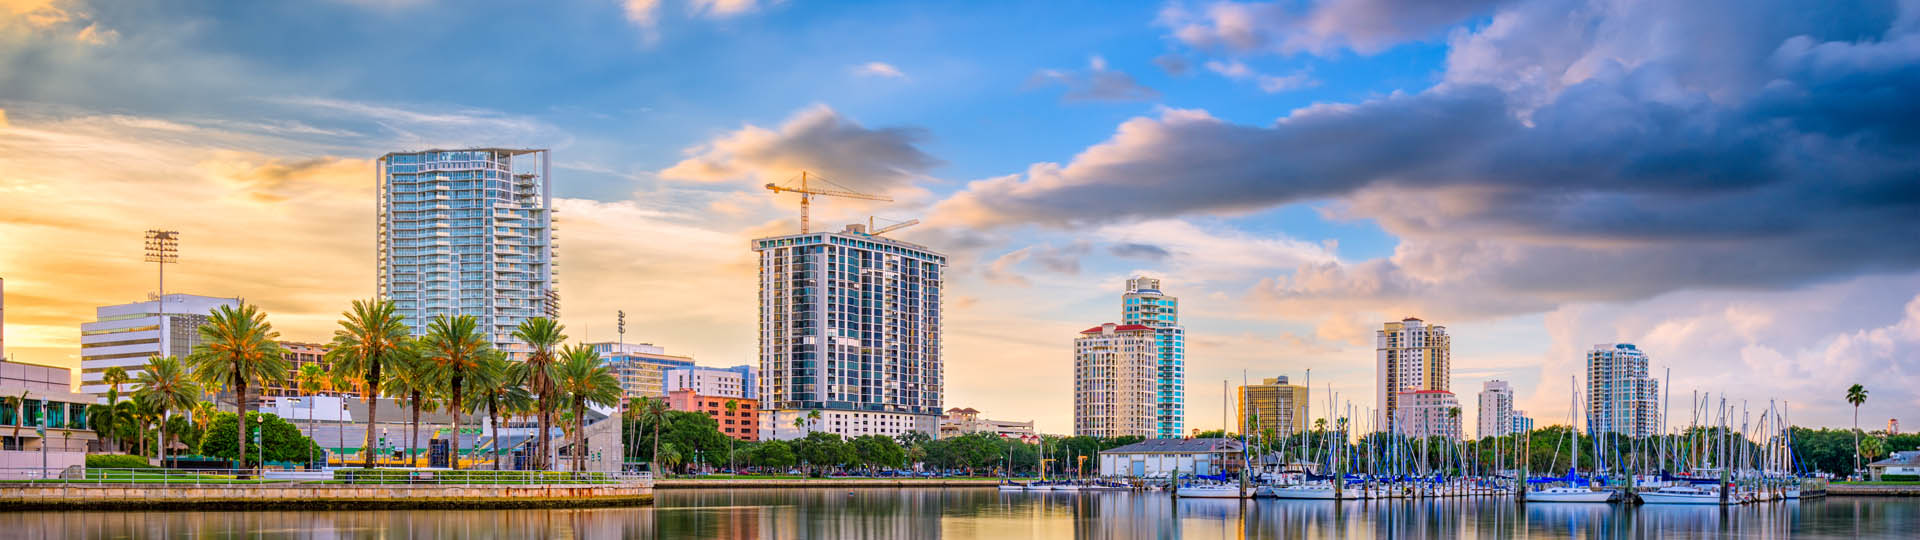 Investors In St. Petersburg, Florida